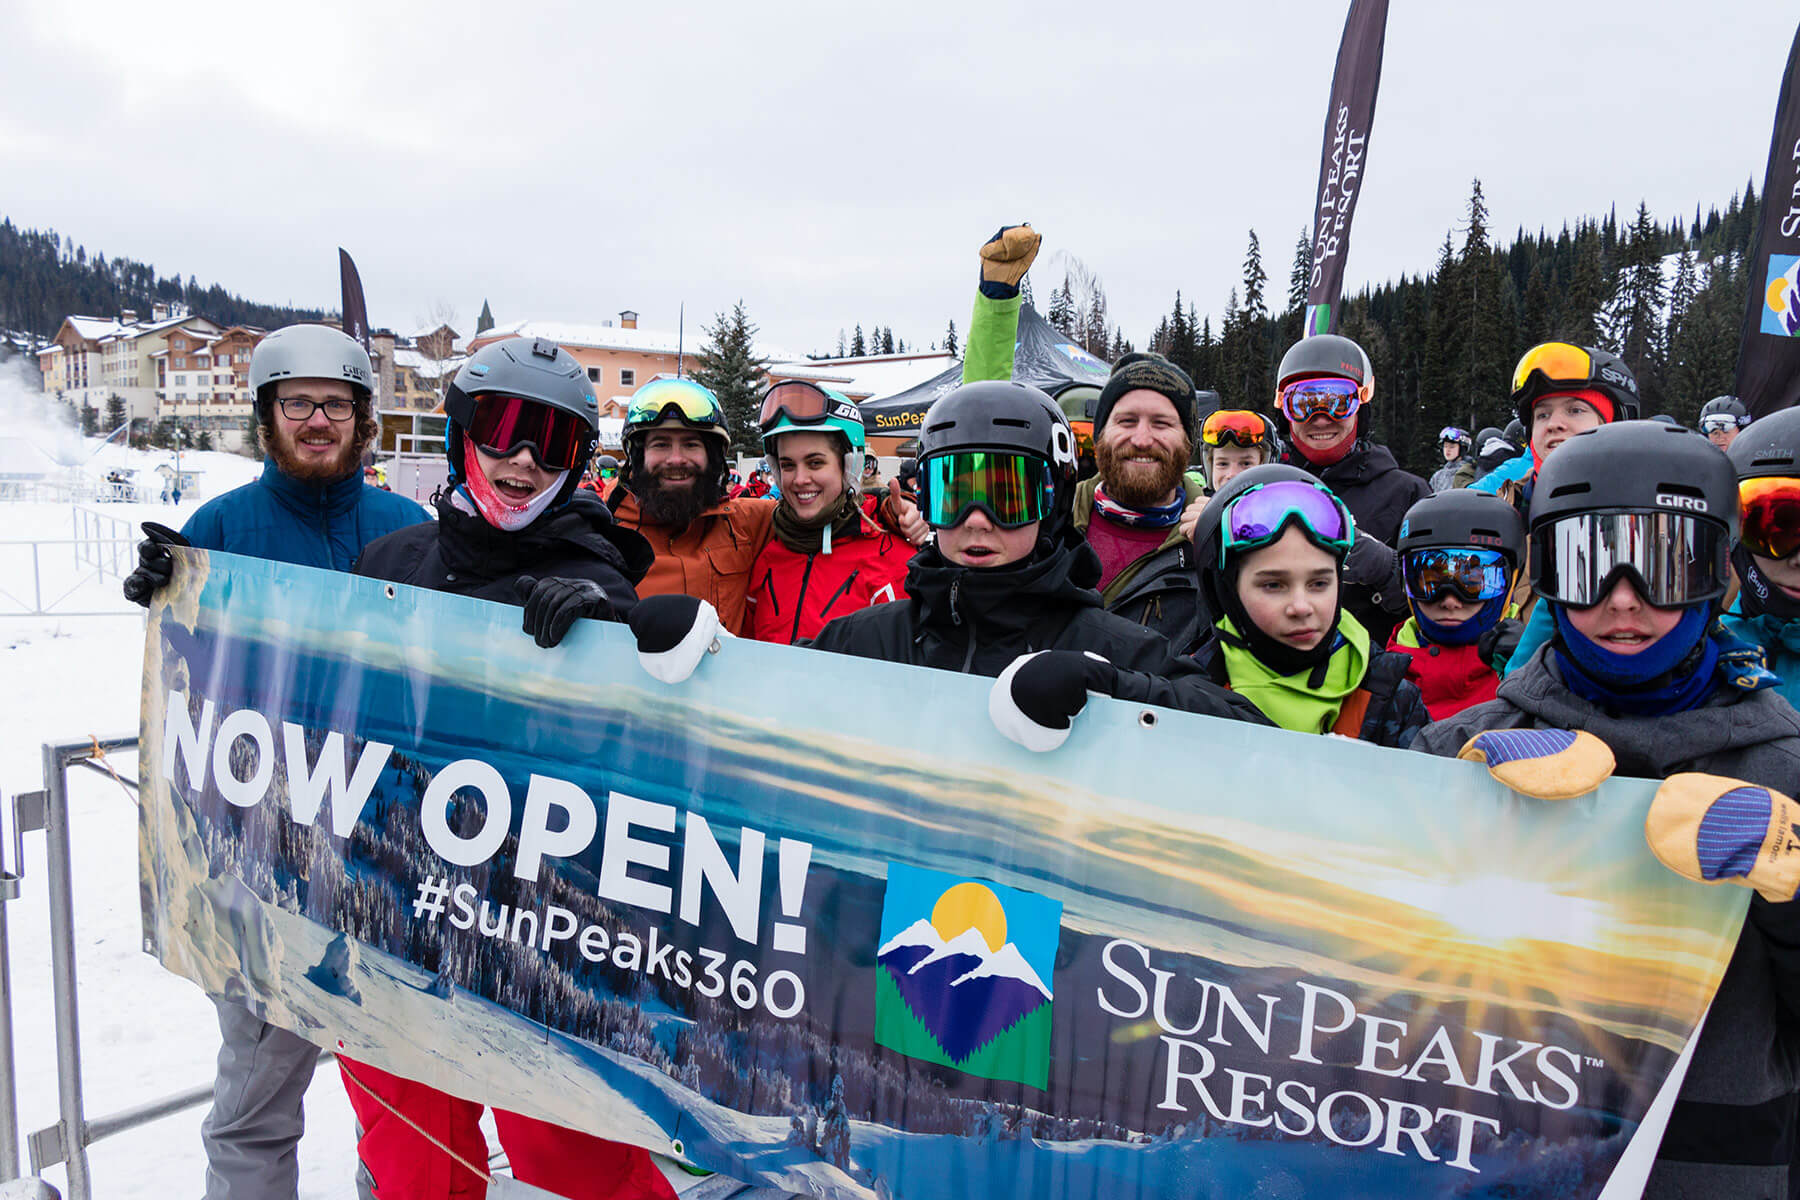 Winter 2019/20 Opening Day at Sun Peaks Resort